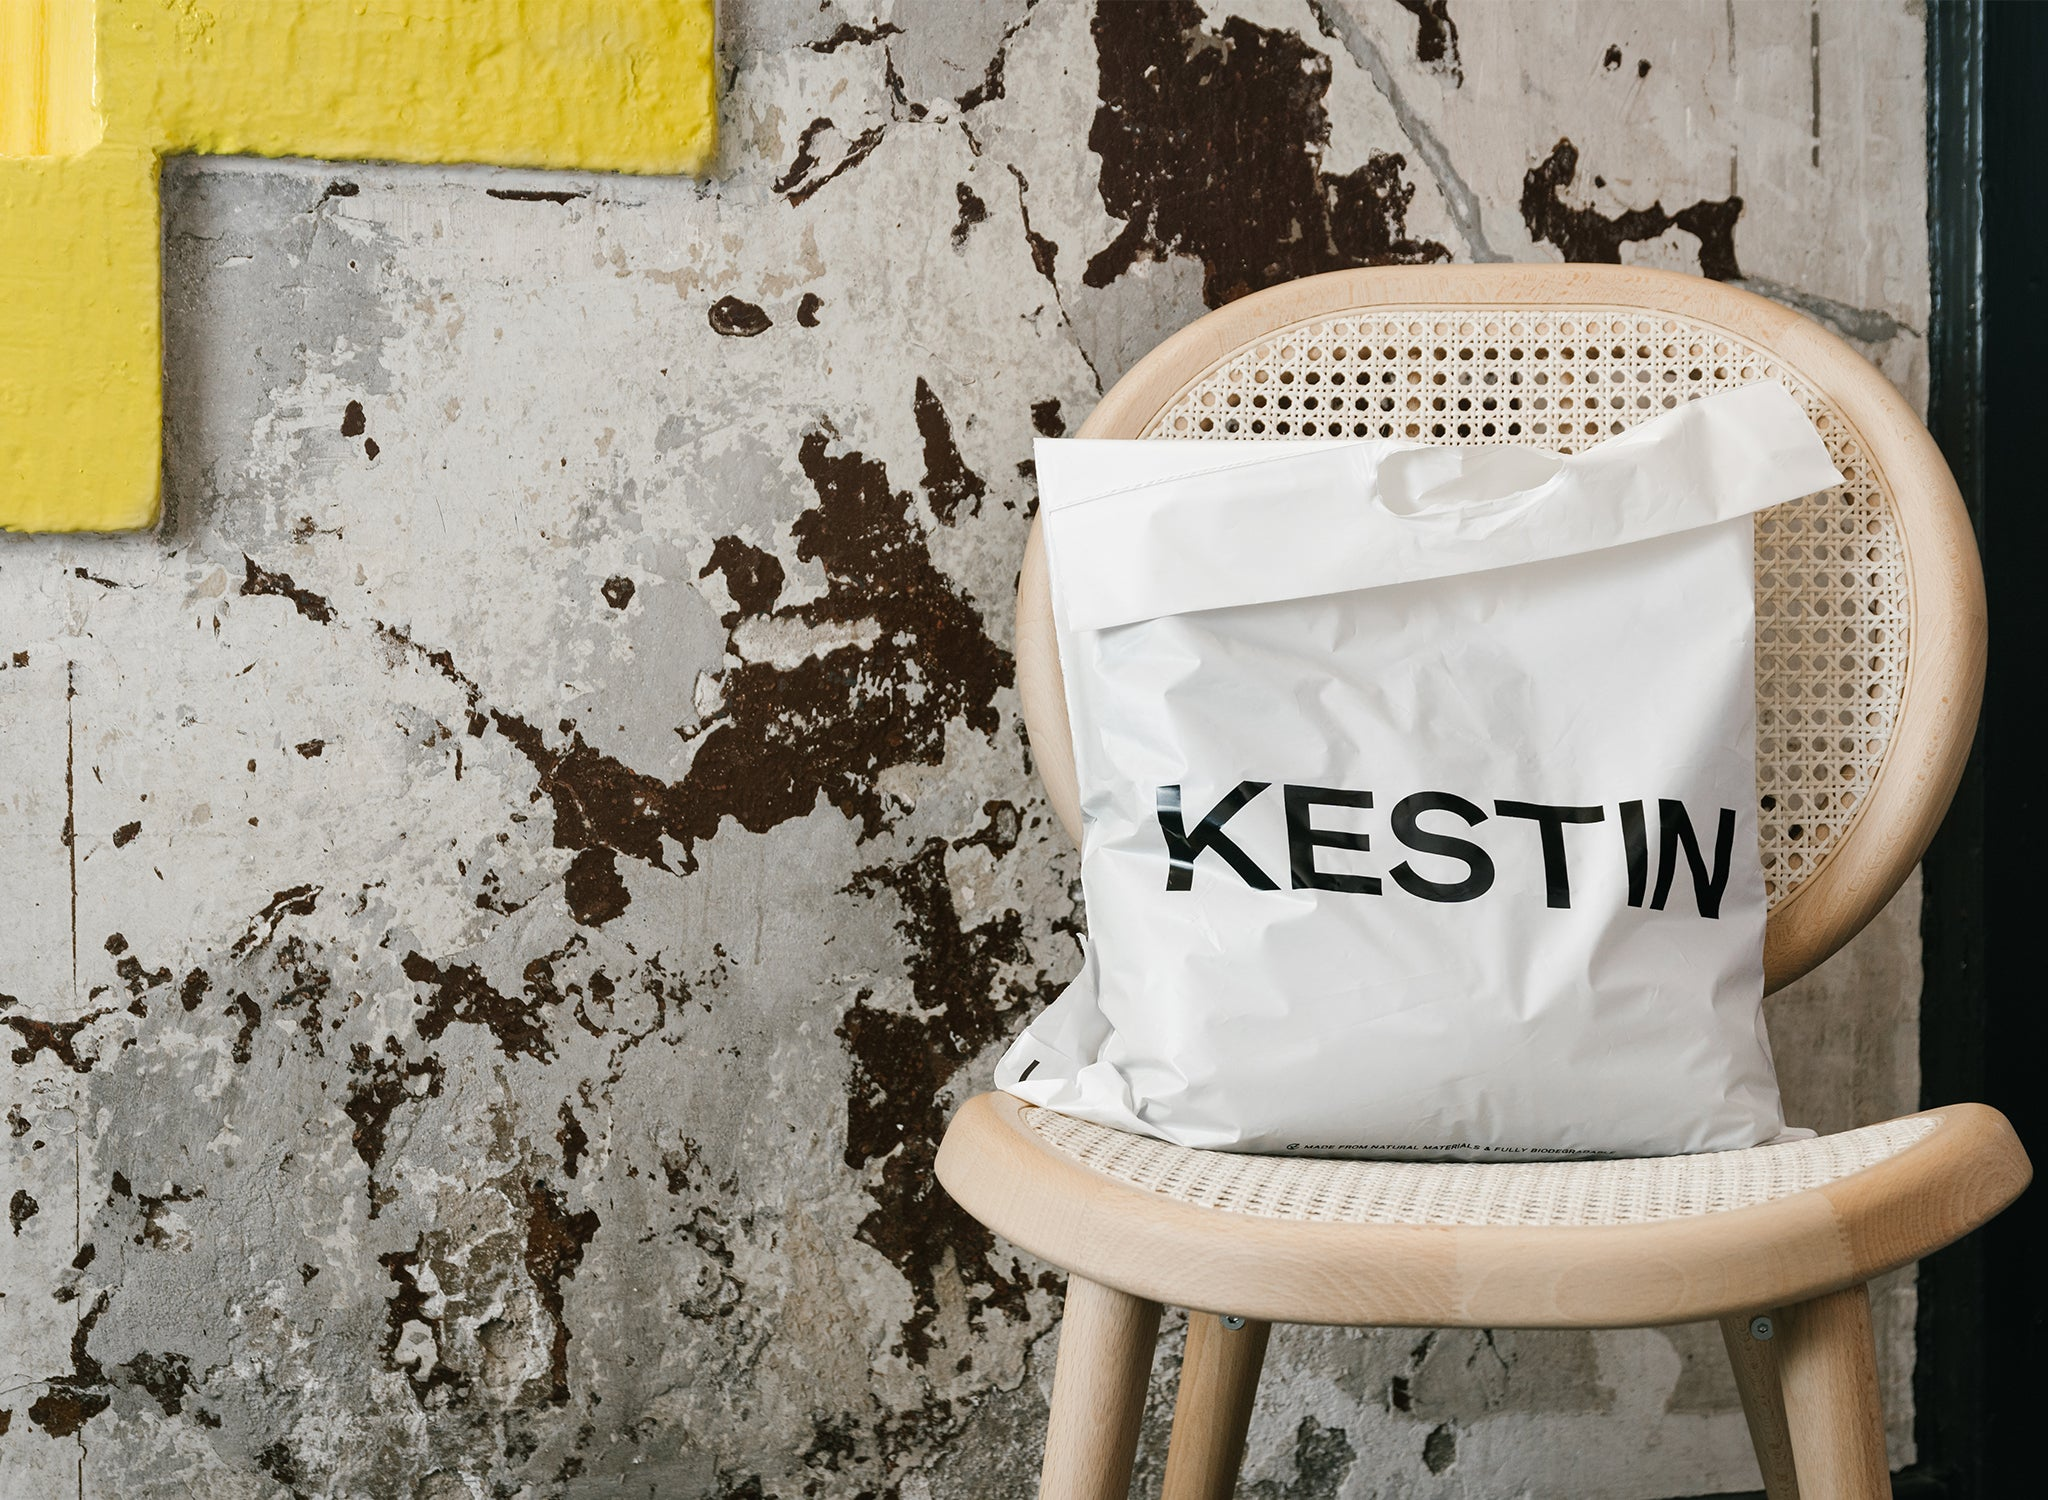 Kestin eco-friendly 100% compostable shipping bag